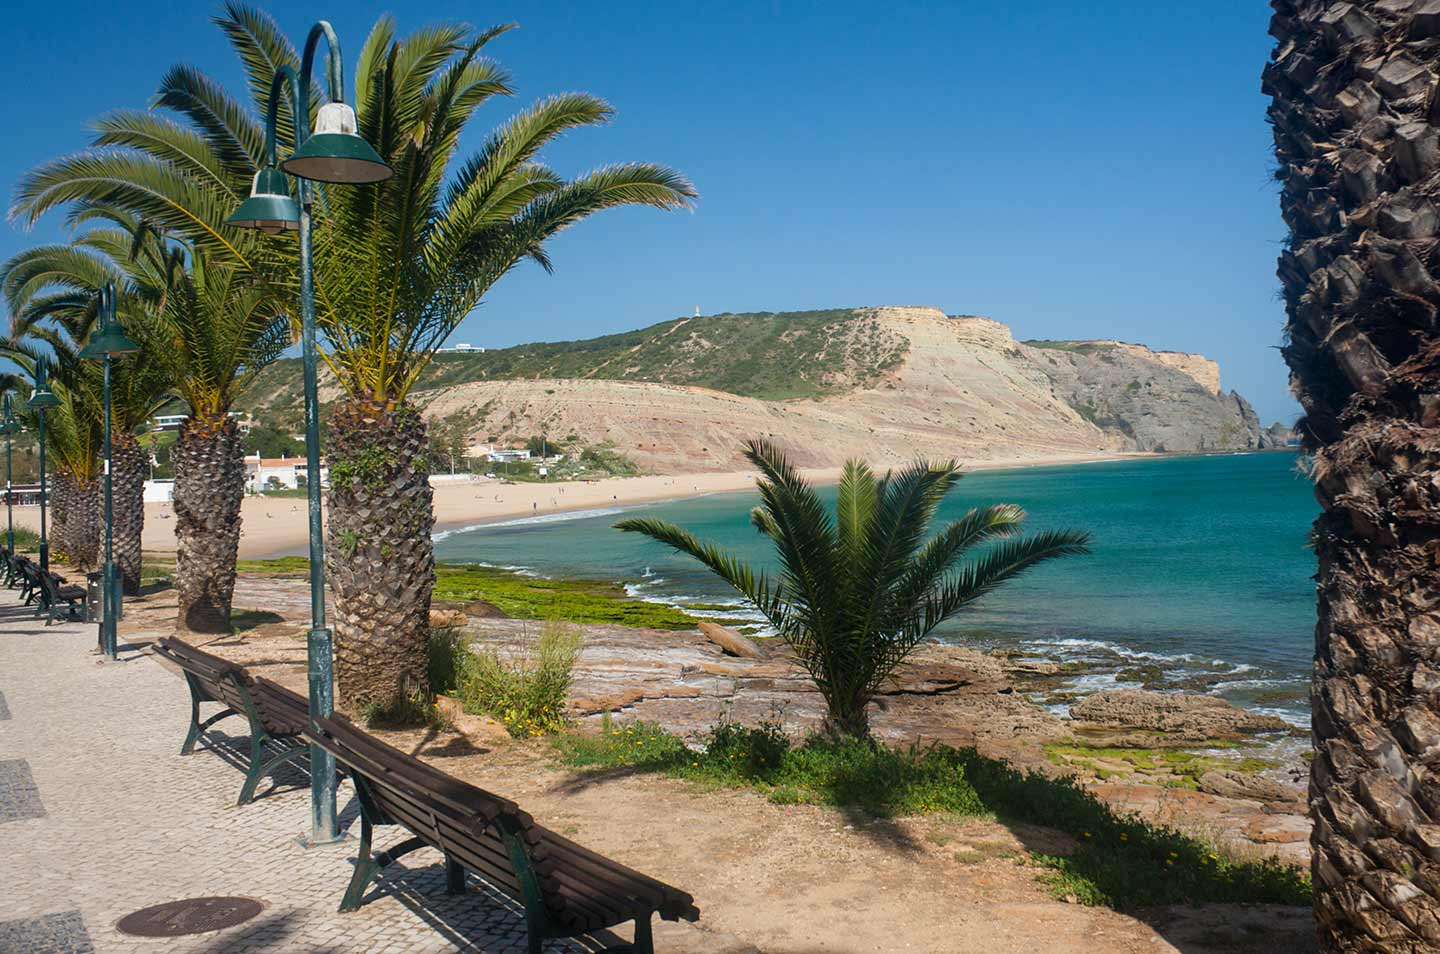 Image of Praia da Luz beach on the Algarve